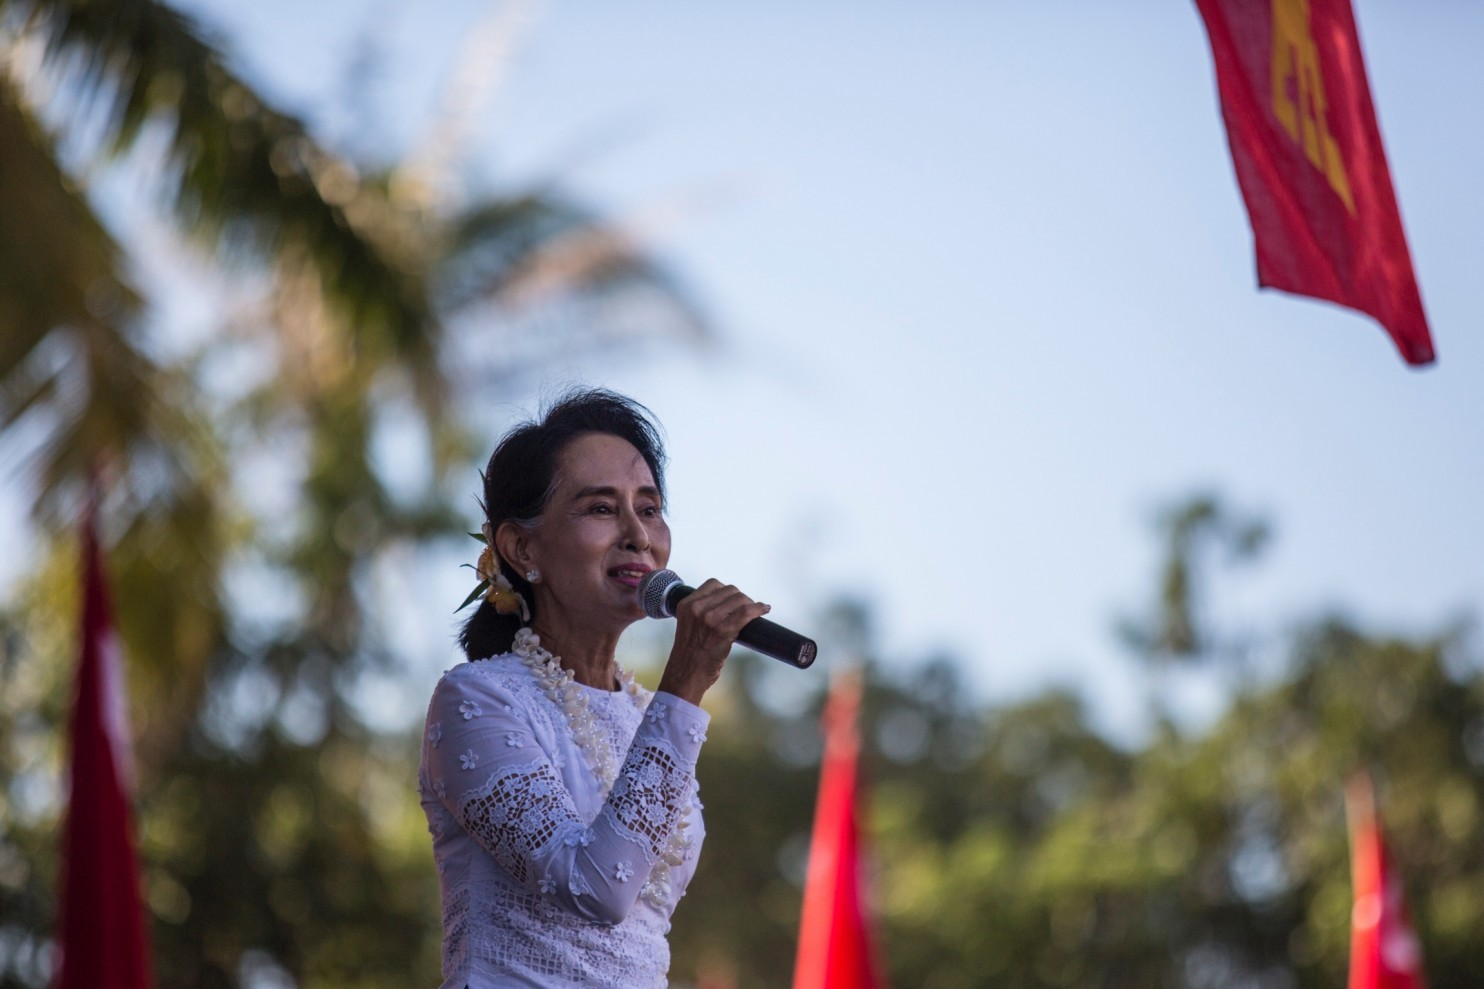 aung san suu kyi vs martin luther king jr Synthesis essay king vs aung san suu kyi 980 words | 4 pages martin luther king jr and aung san suu kyi king displayed forms of non-violence during the civil.